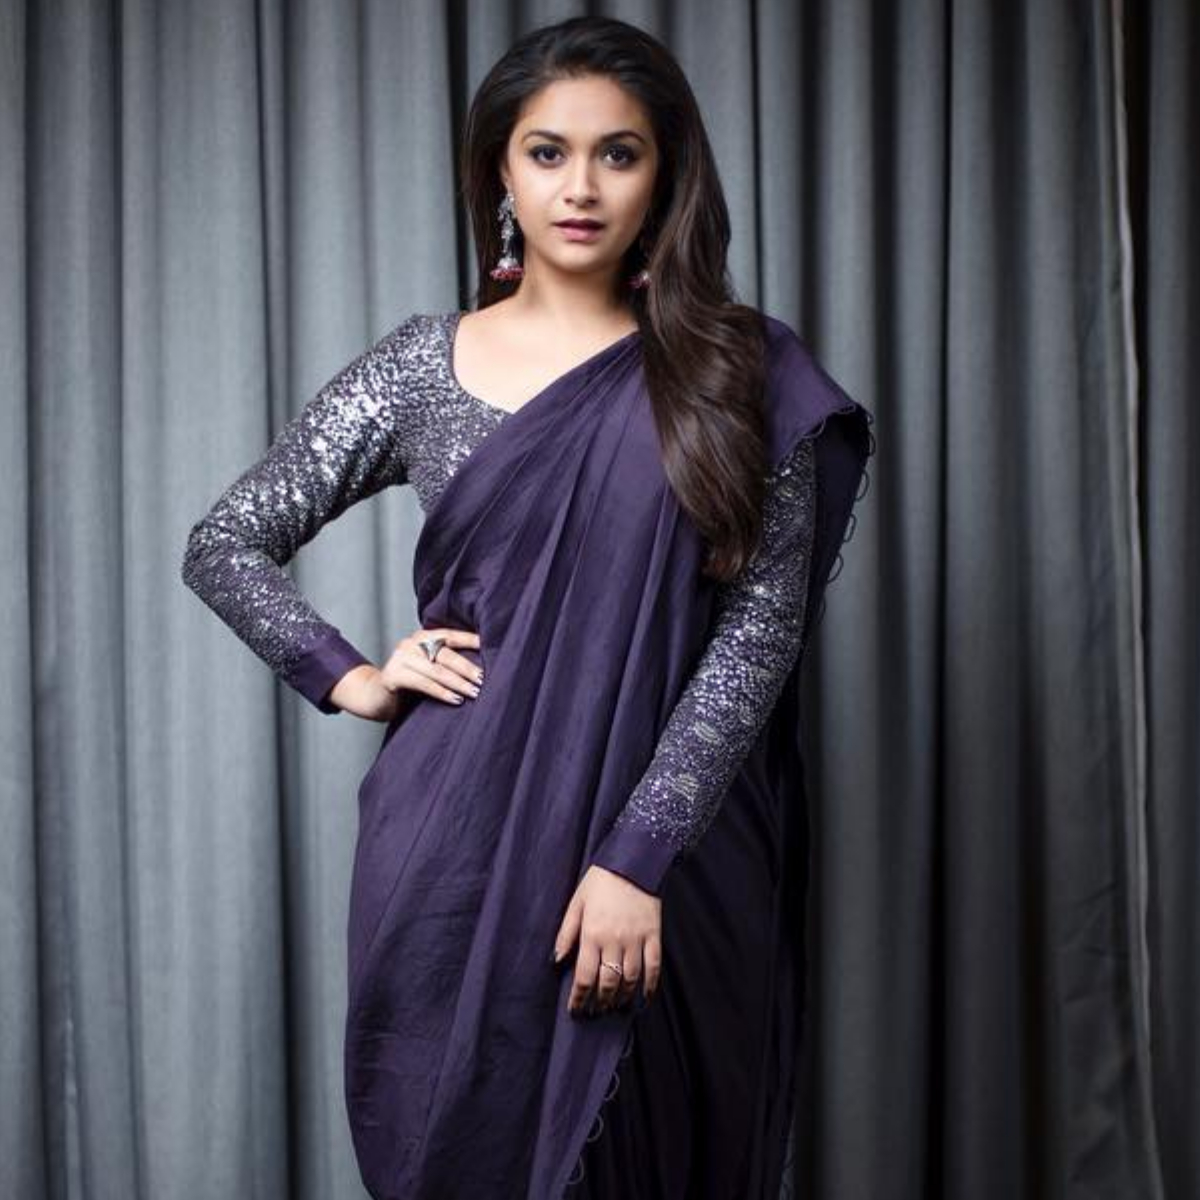 Keerthy Suresh thanks fans for showering her with love and blessings; Says 'Take a seat & grab your popcorns'